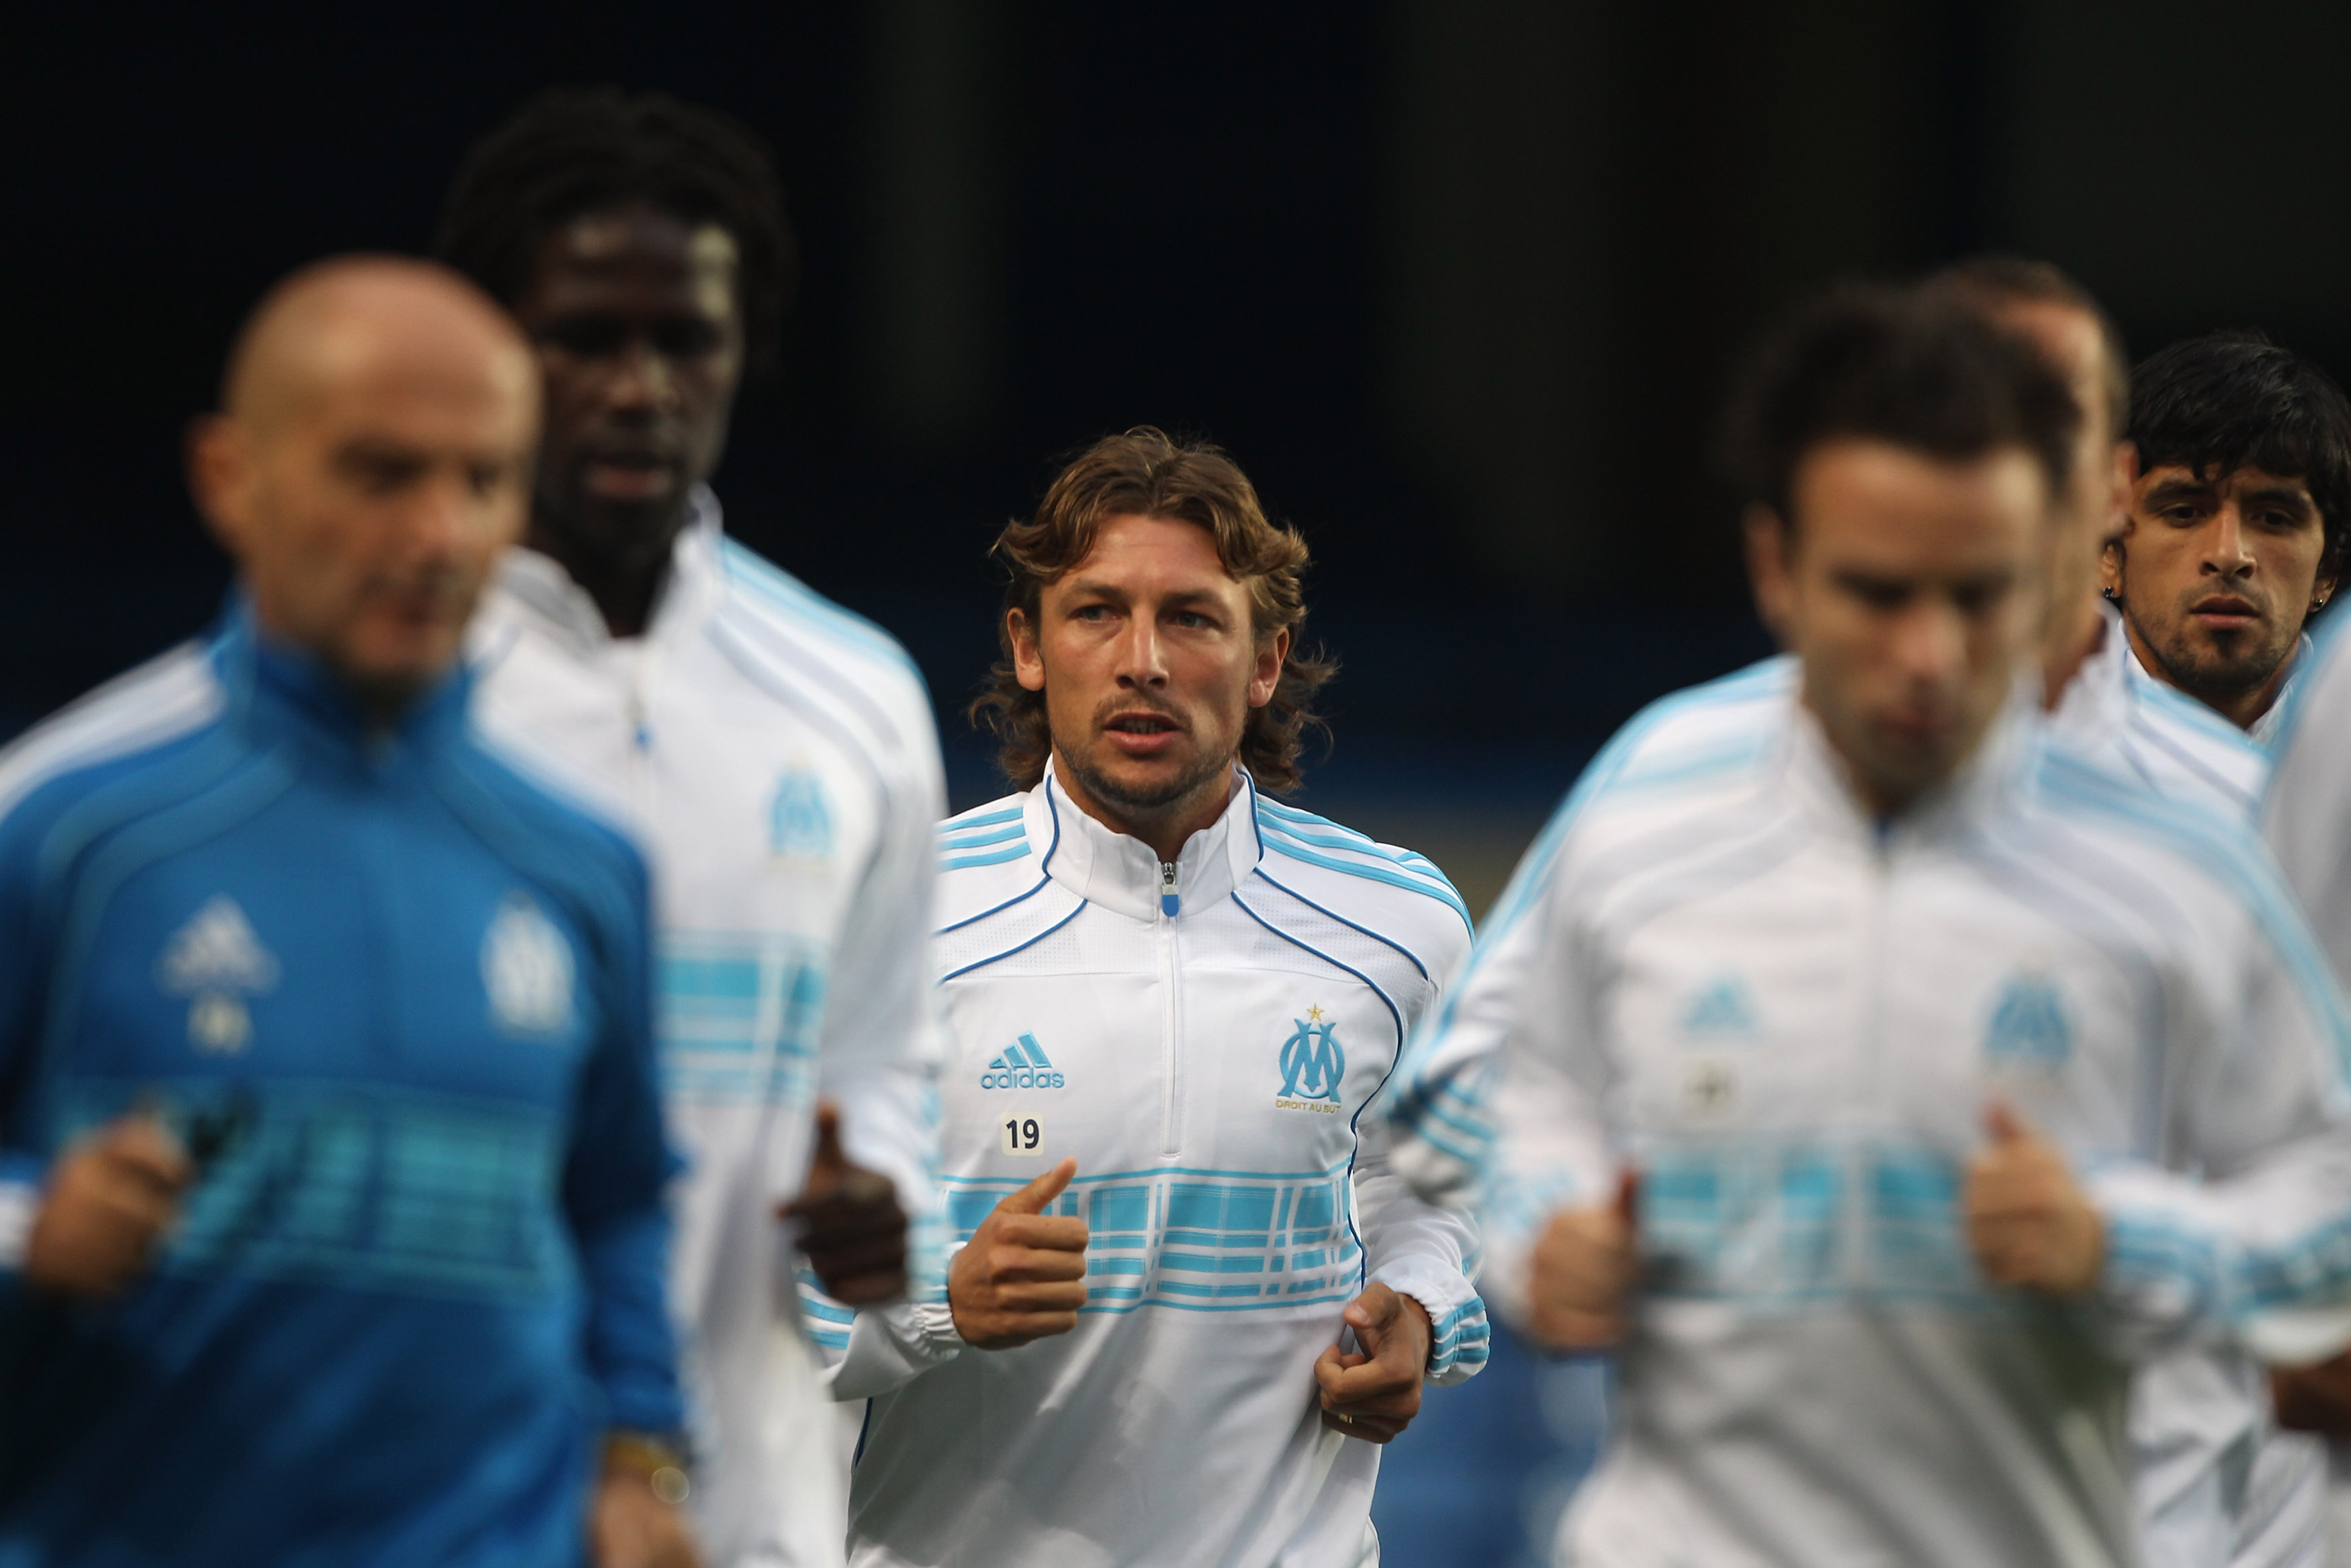 LONDON, ENGLAND - SEPTEMBER 27:  Gabriel Heinze of Marseille jogs during a training session ahead of their UEFA Champions League Group F match against Chelsea FC at Stamford Bridge on September 27, 2010 in London, England.  (Photo by Tom Shaw/Getty Images